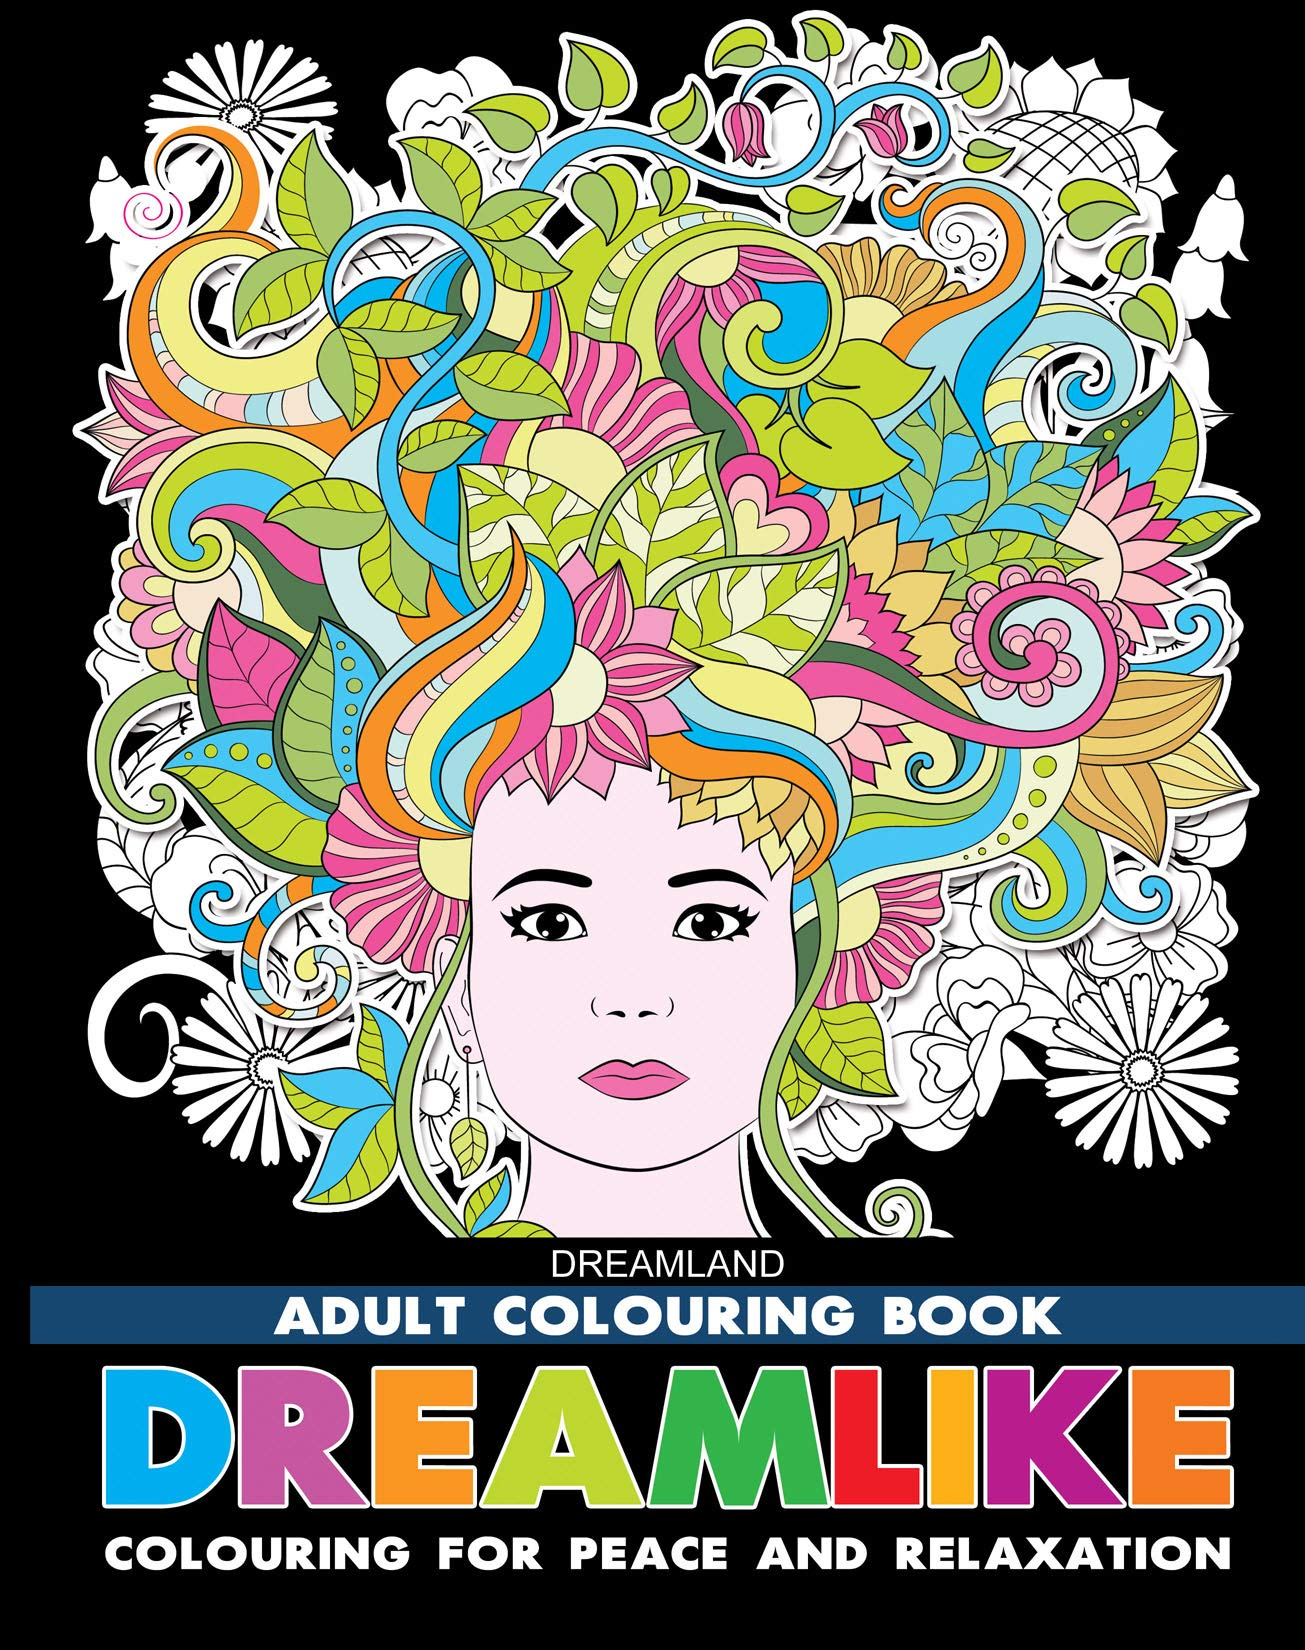 Dreamlike - Adult Colouring Book for Peace & Relaxation